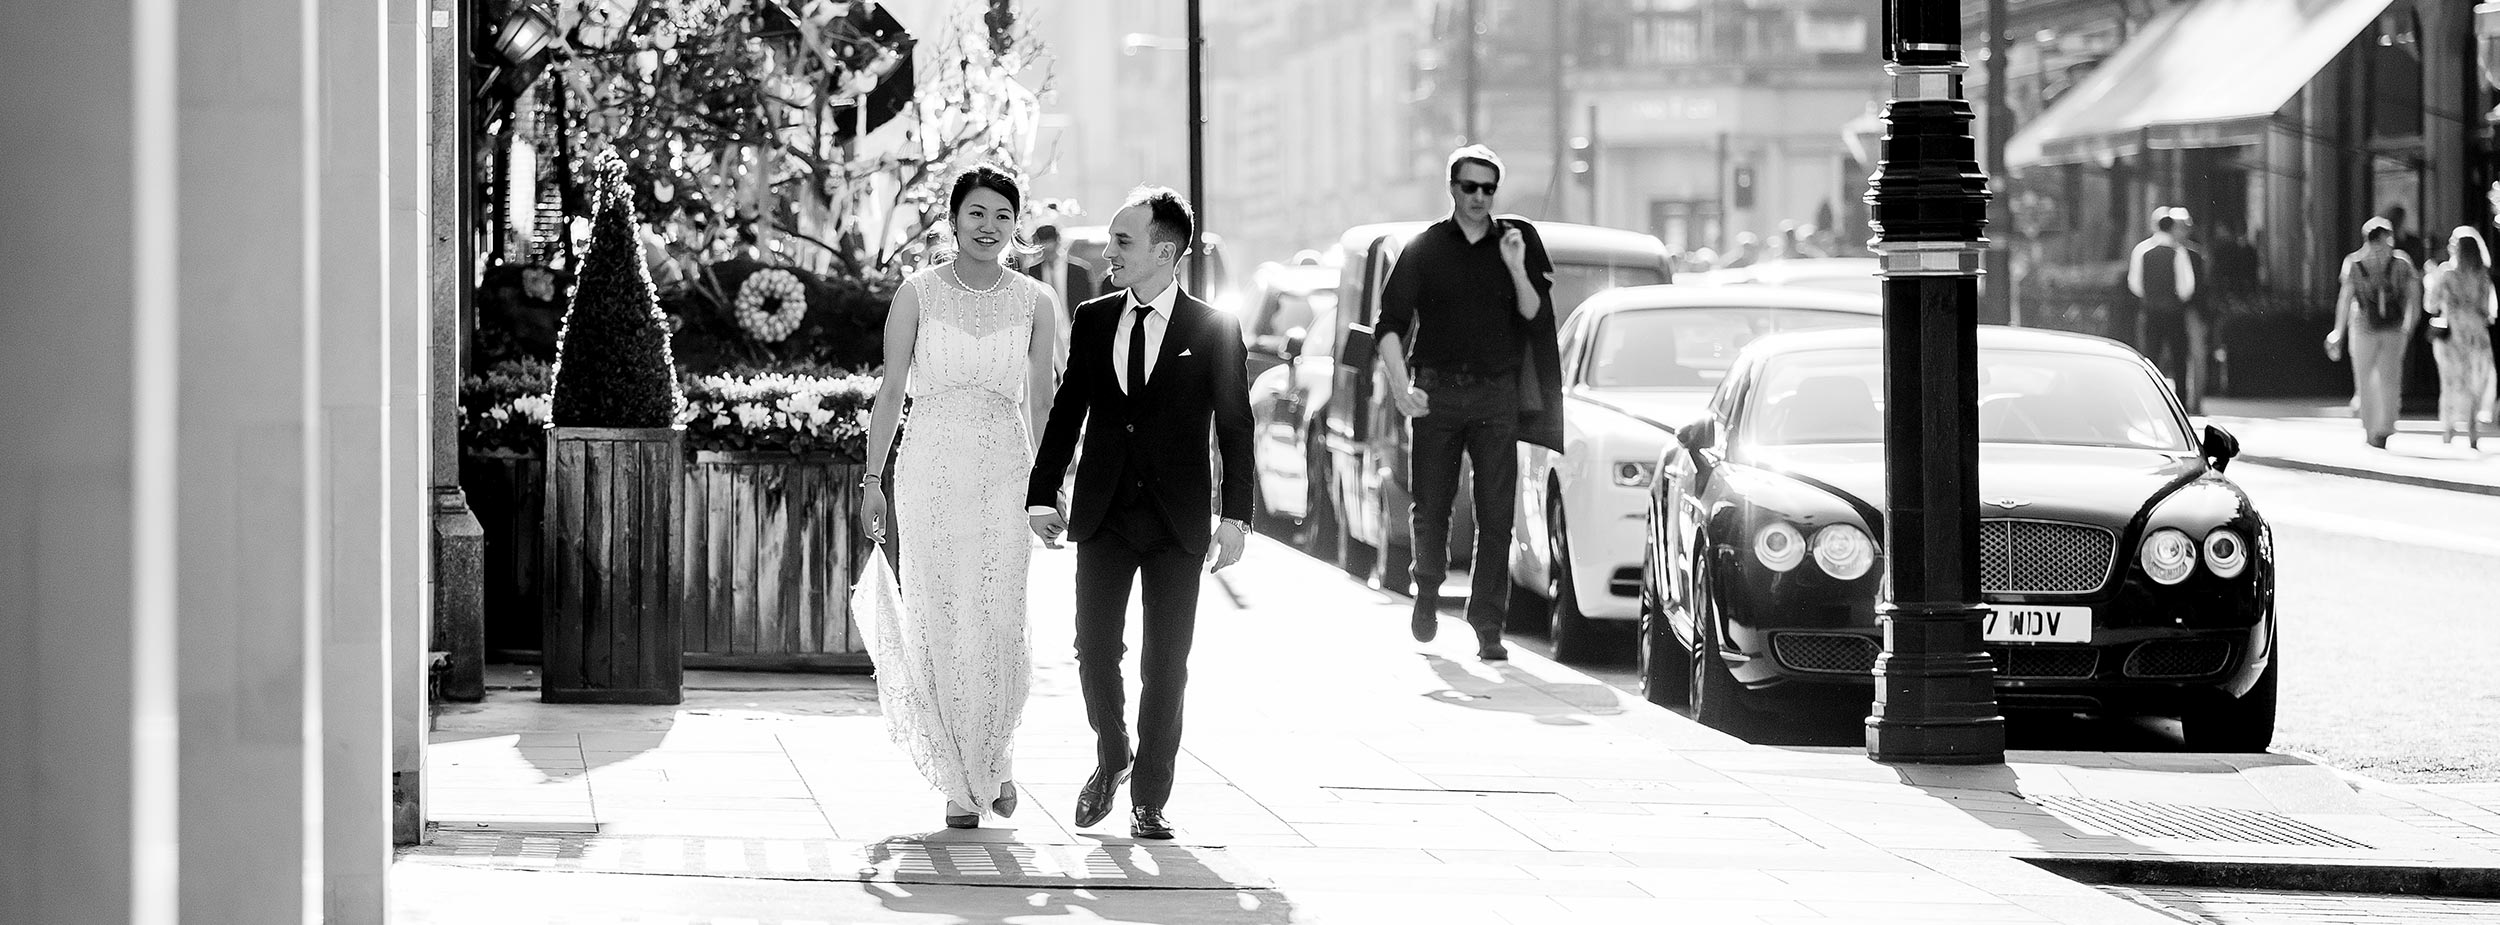 https://savarese.co.uk/mayfair-wedding-photographer-london-grosvenor-square-marriott/